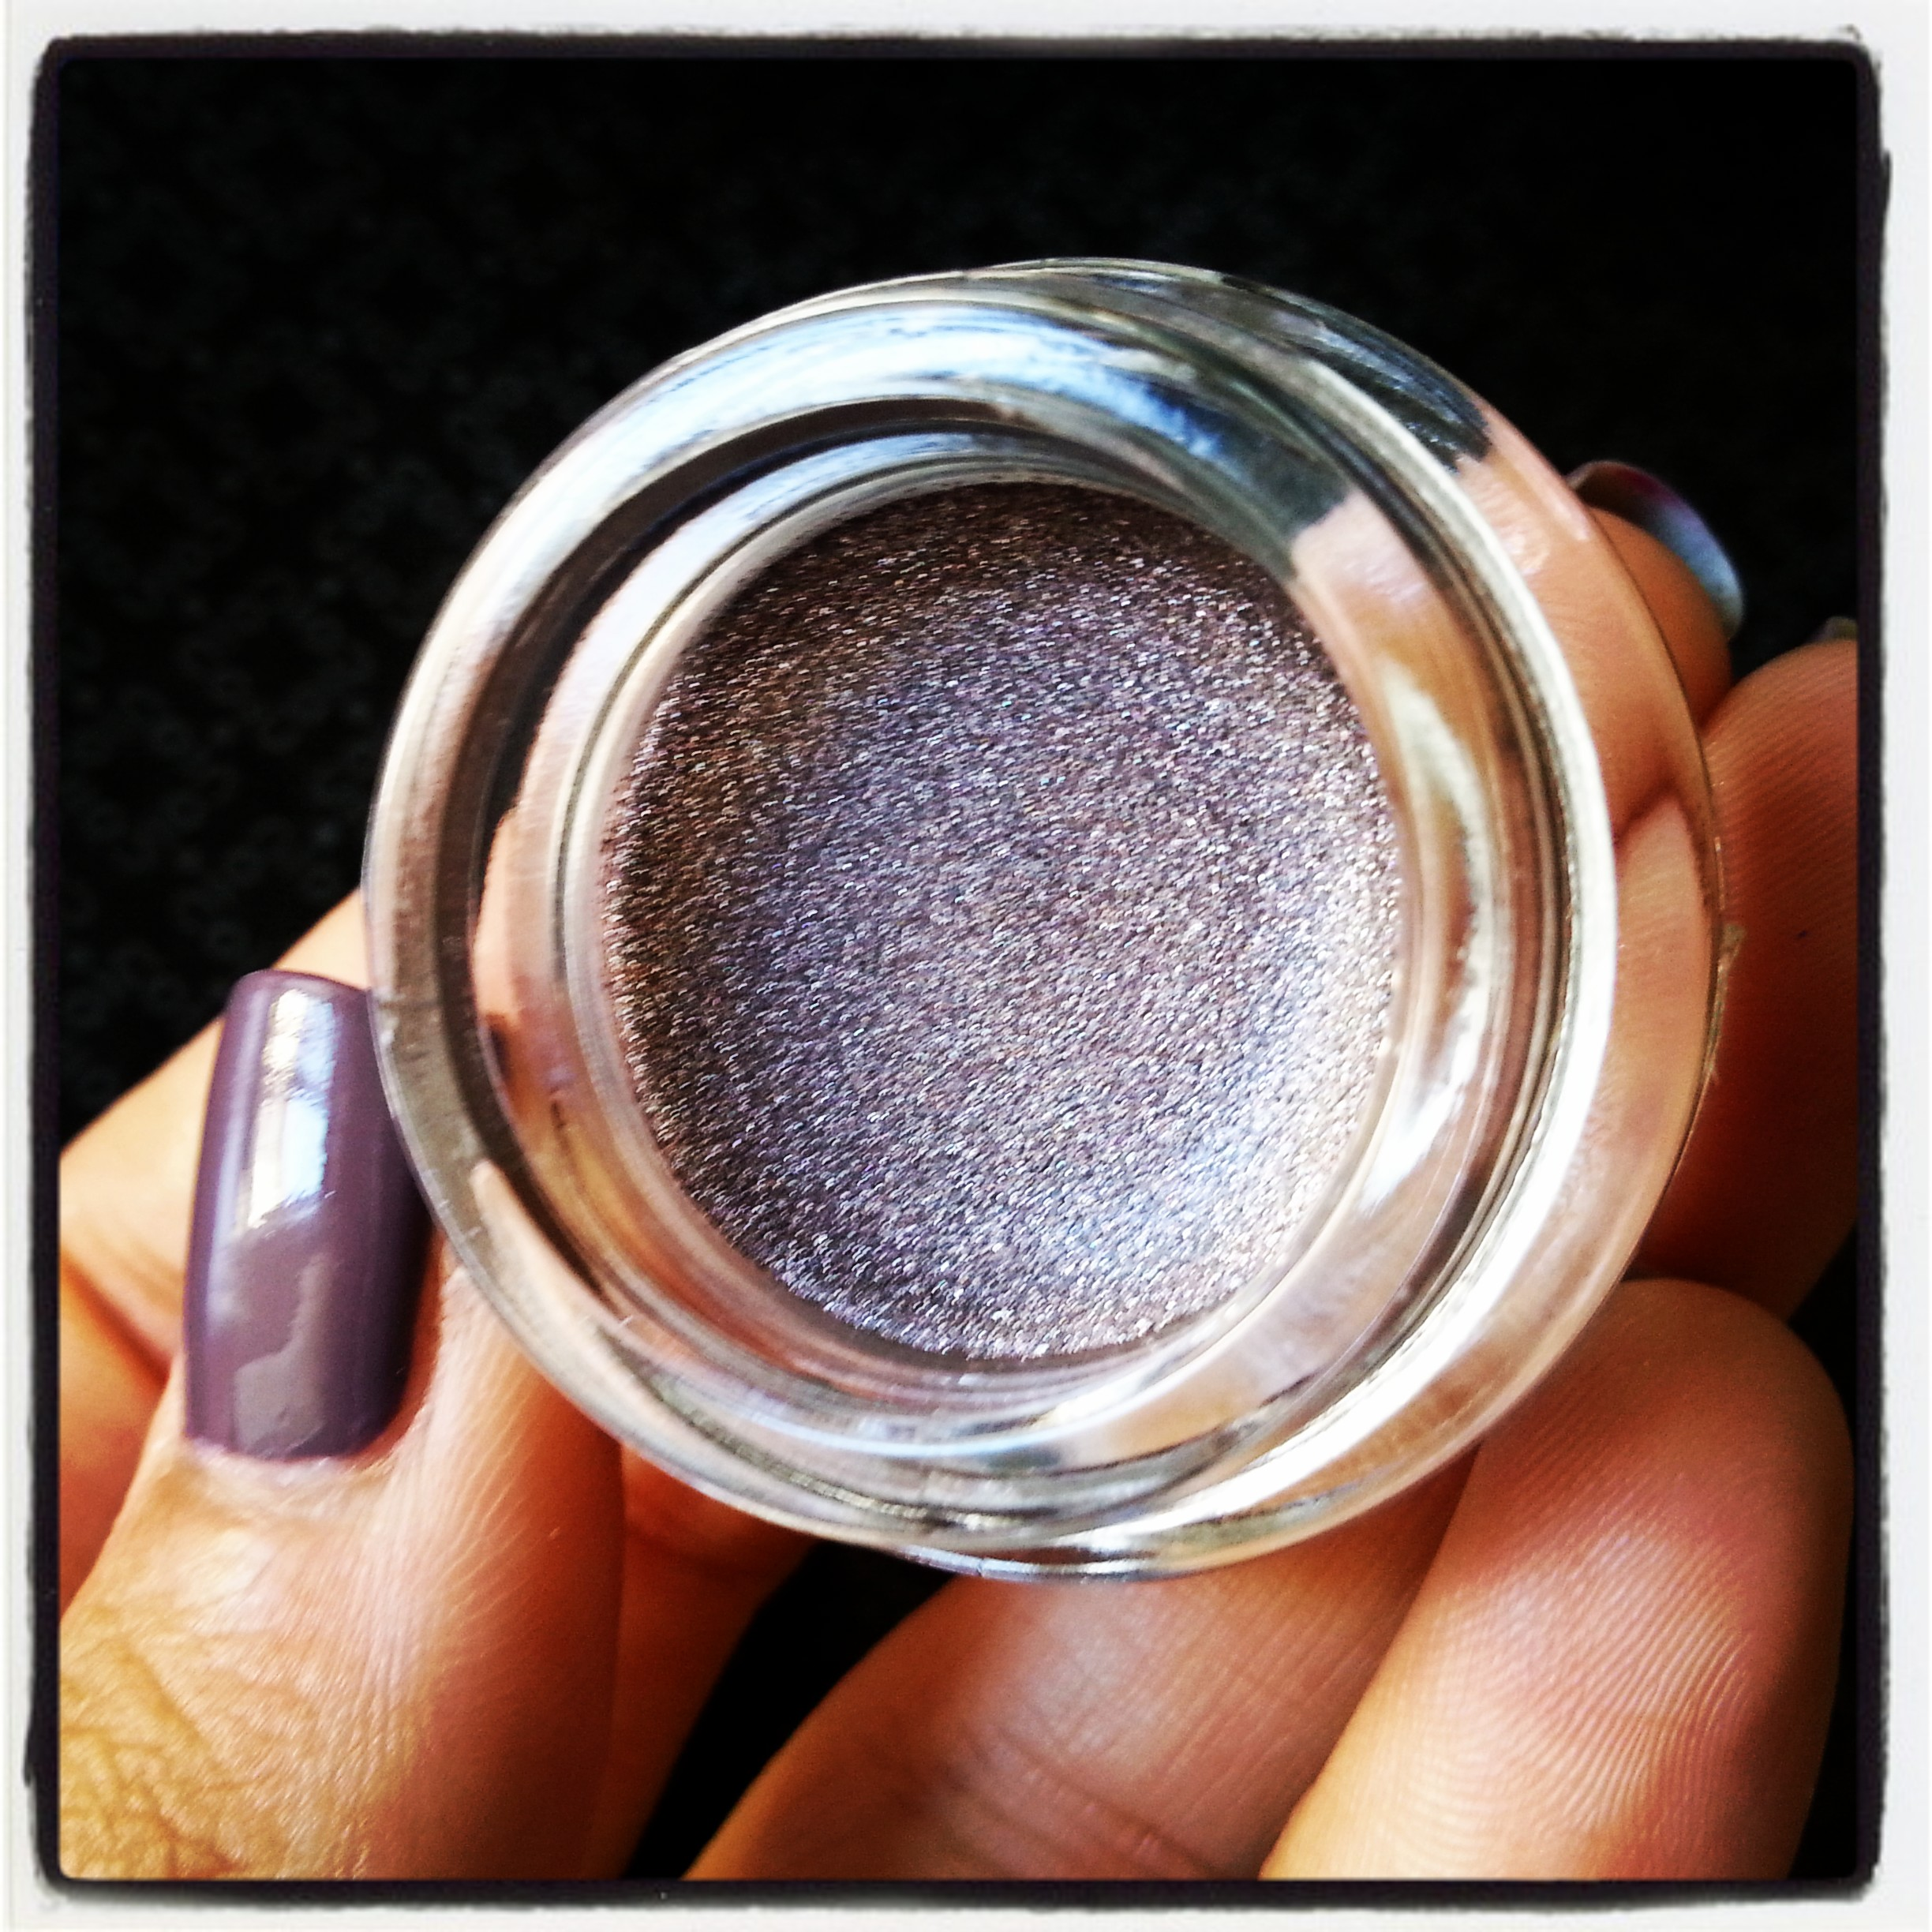 PUPA Vamp! Cream eyeshadow #600 Illusion Gray